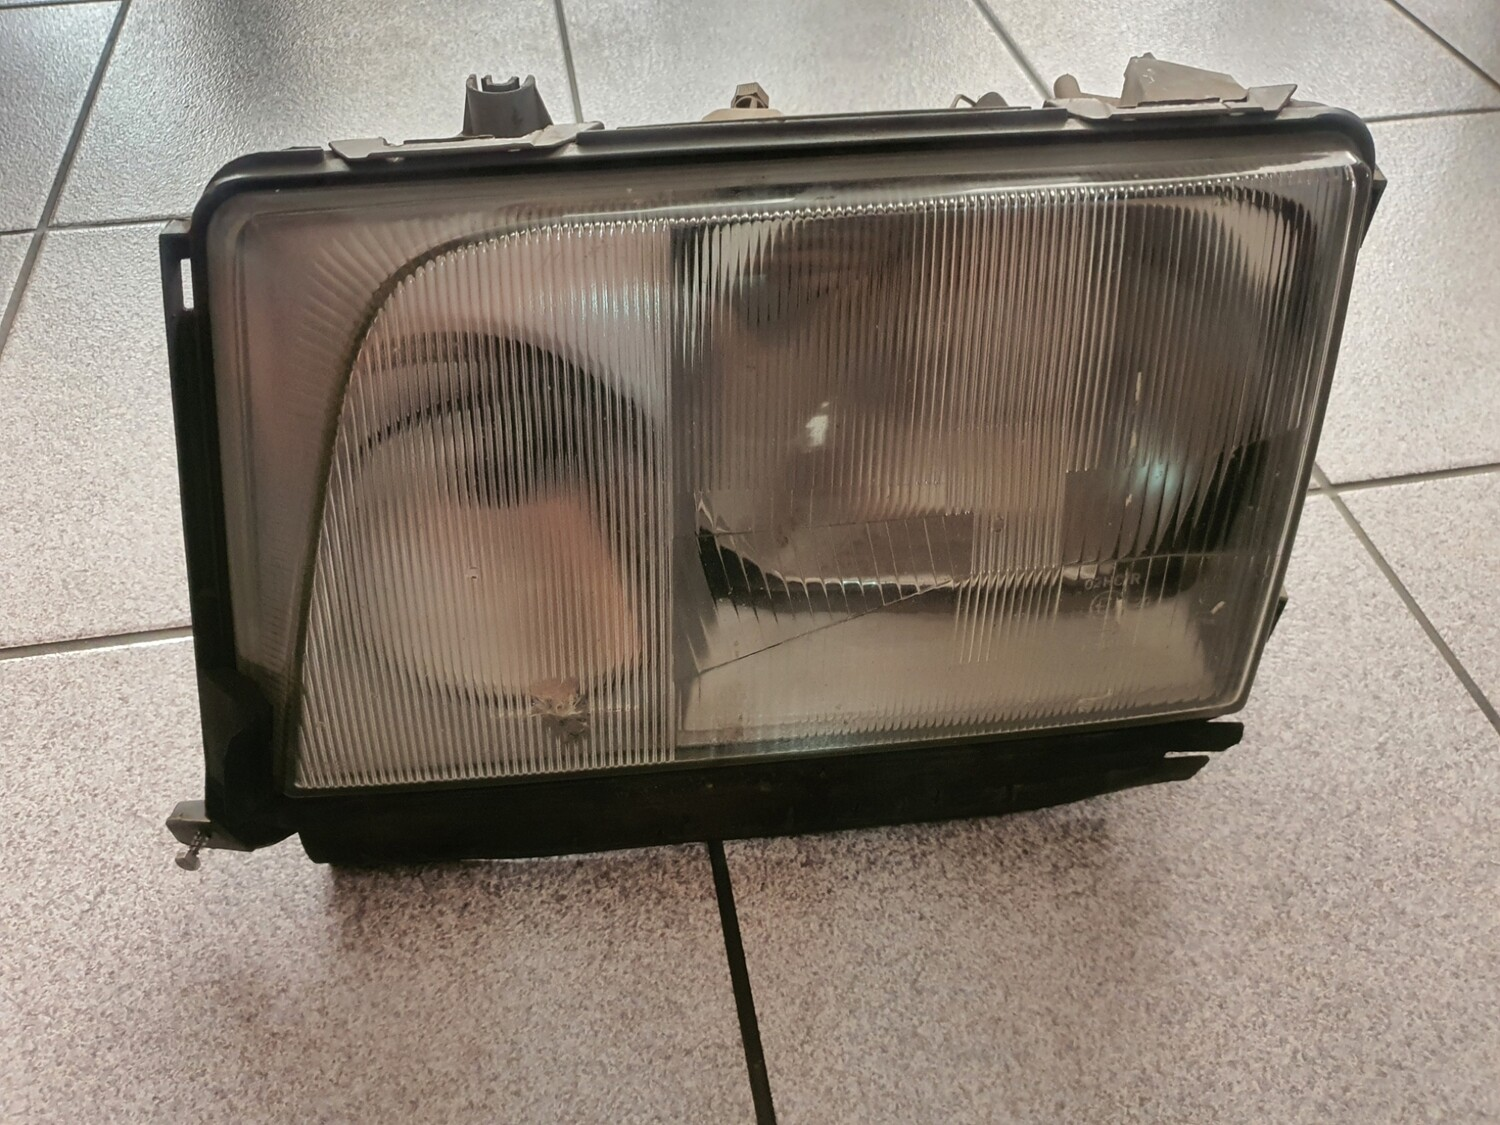 Mercedes-Benz Left Facelift Headlight With Chip (W124)